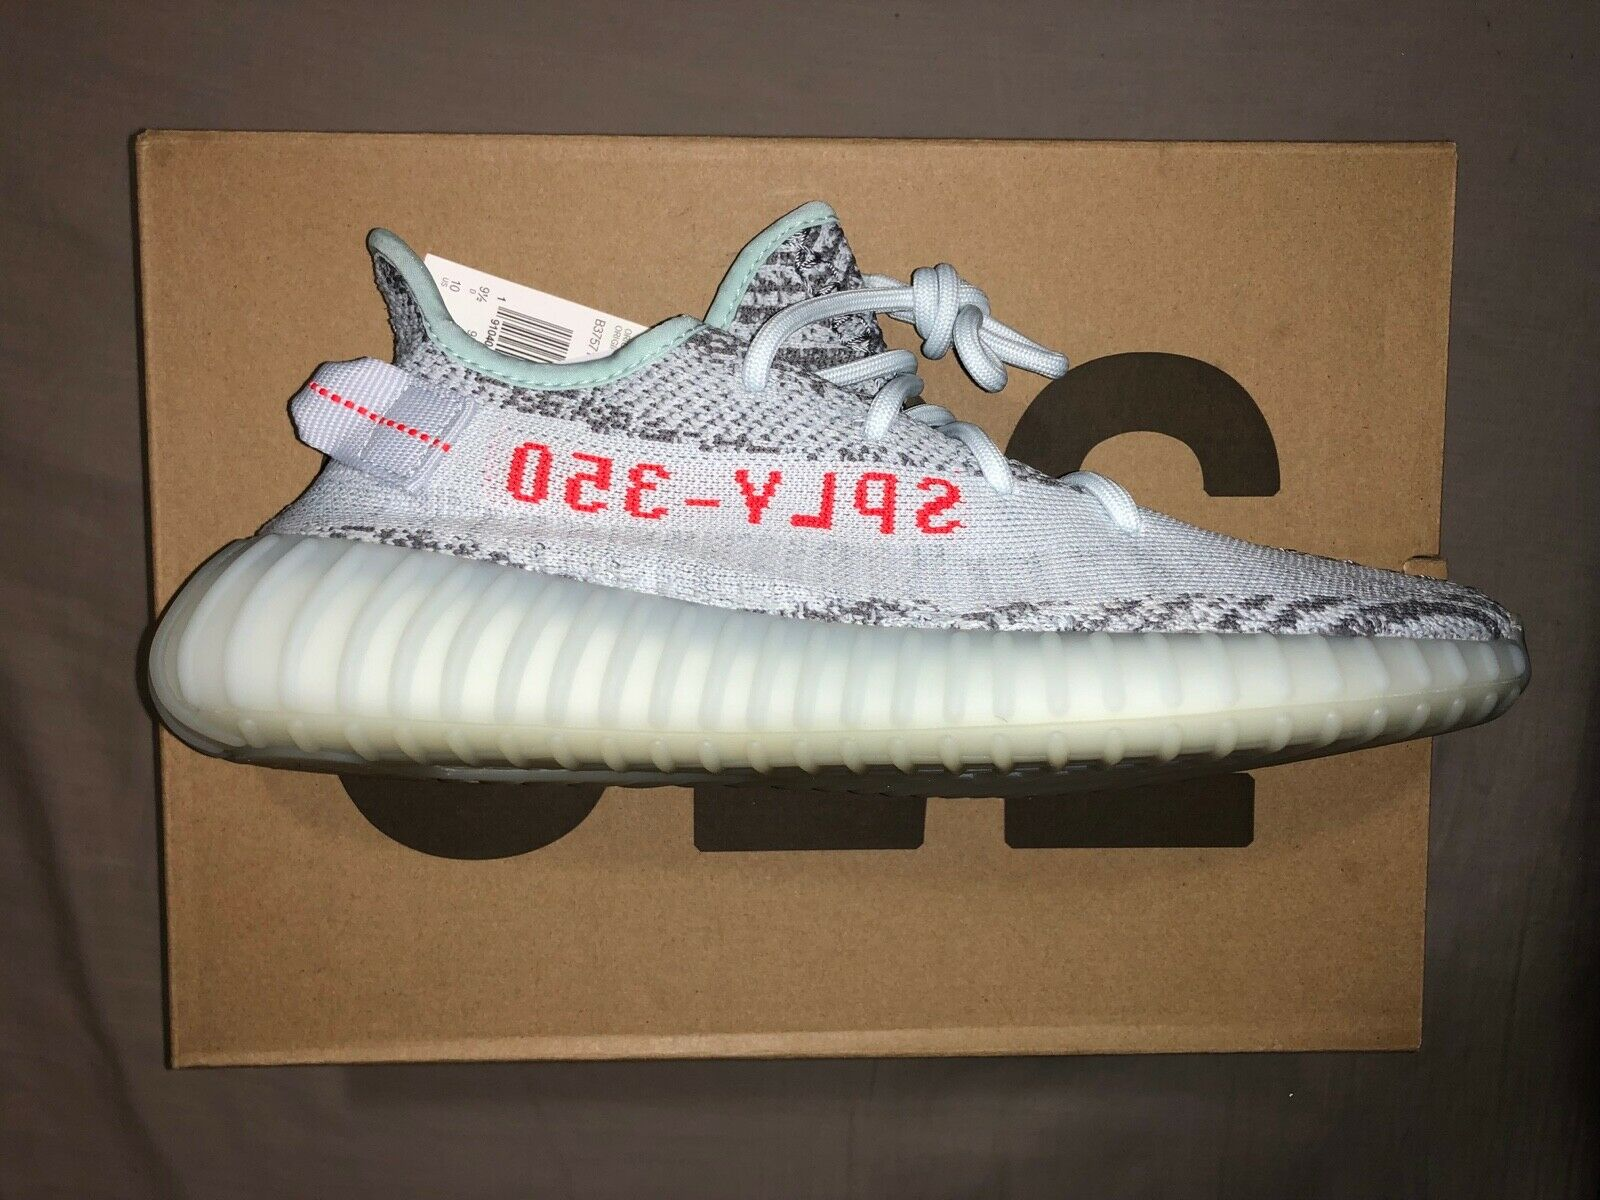 Adidas YEEZY Boost 350 V2 bluee Tint Grey Red SIZE 10 B37571 SPLY DEADSTOCK BOGO